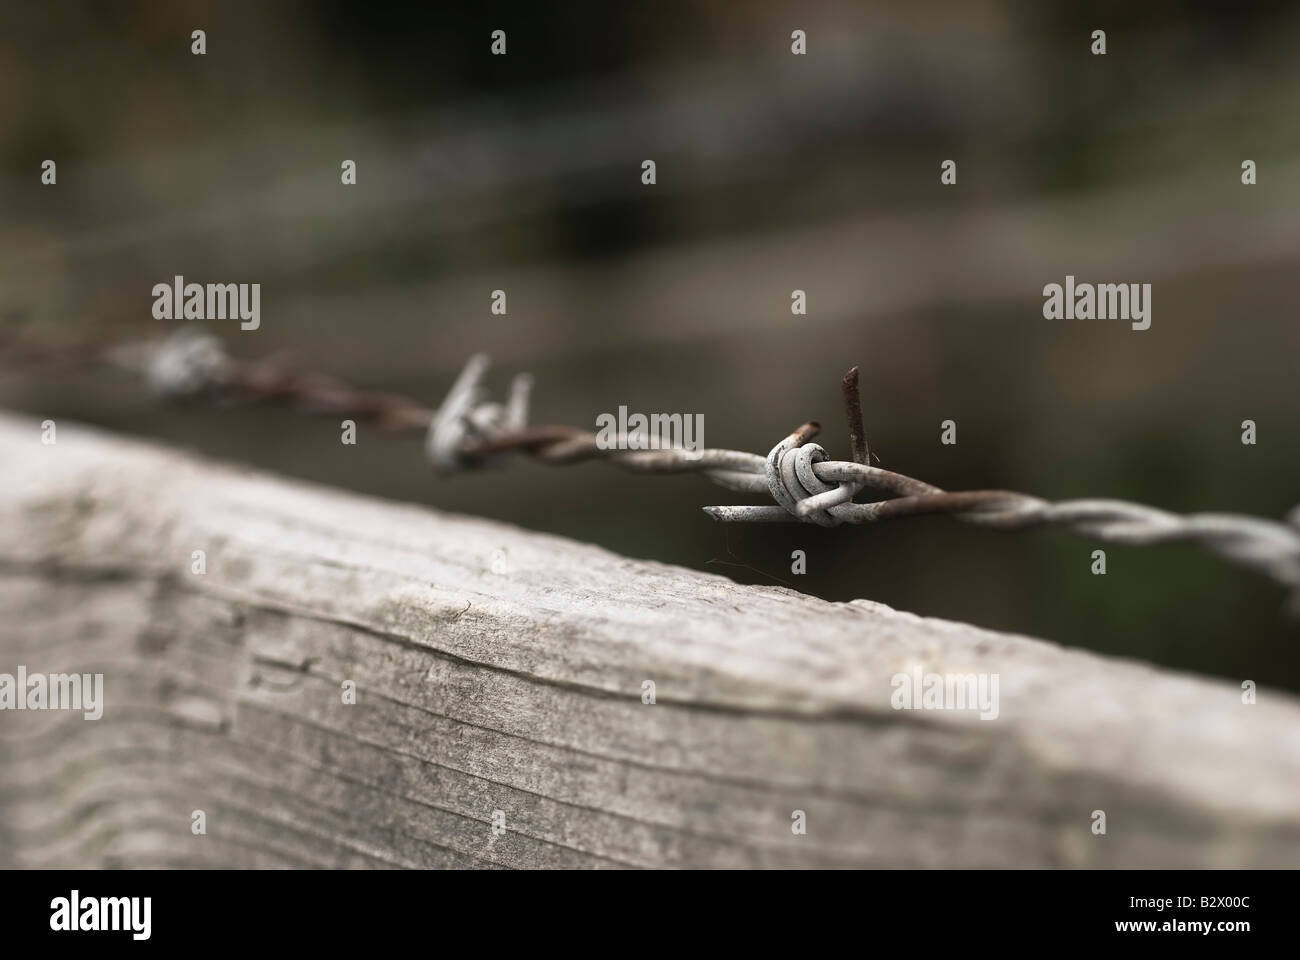 A barbed wire topped fence - Stock Image